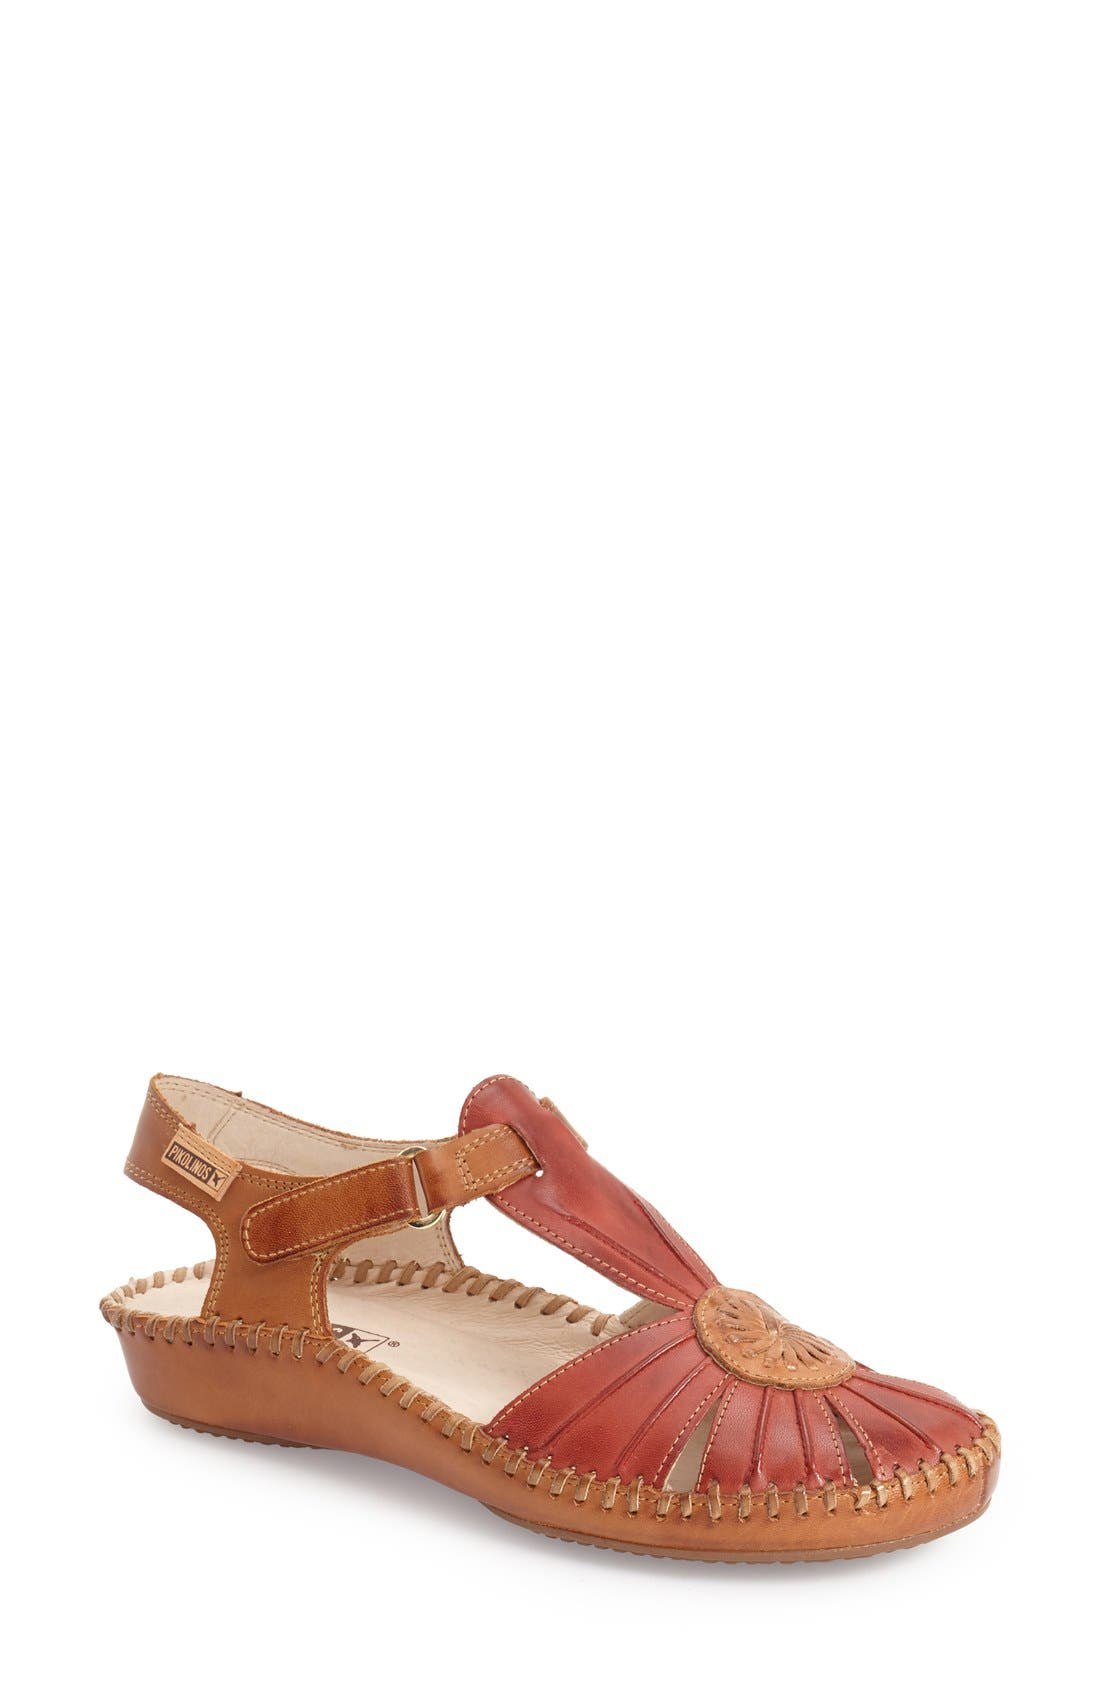 'P. Vallerta' Leather Flat,                             Main thumbnail 1, color,                             Sandia Brandy Leather